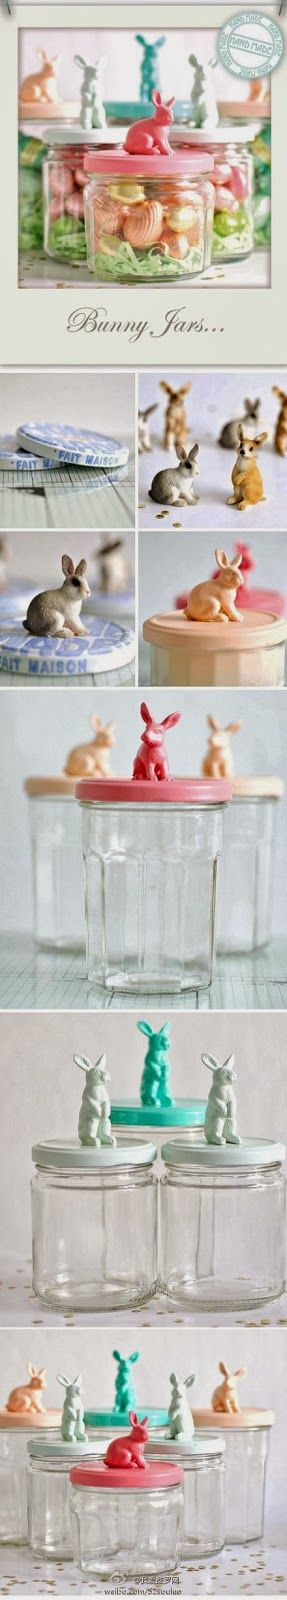 Bunny+jars,,+Easy+to+made.jpg 287×1,600 píxeles